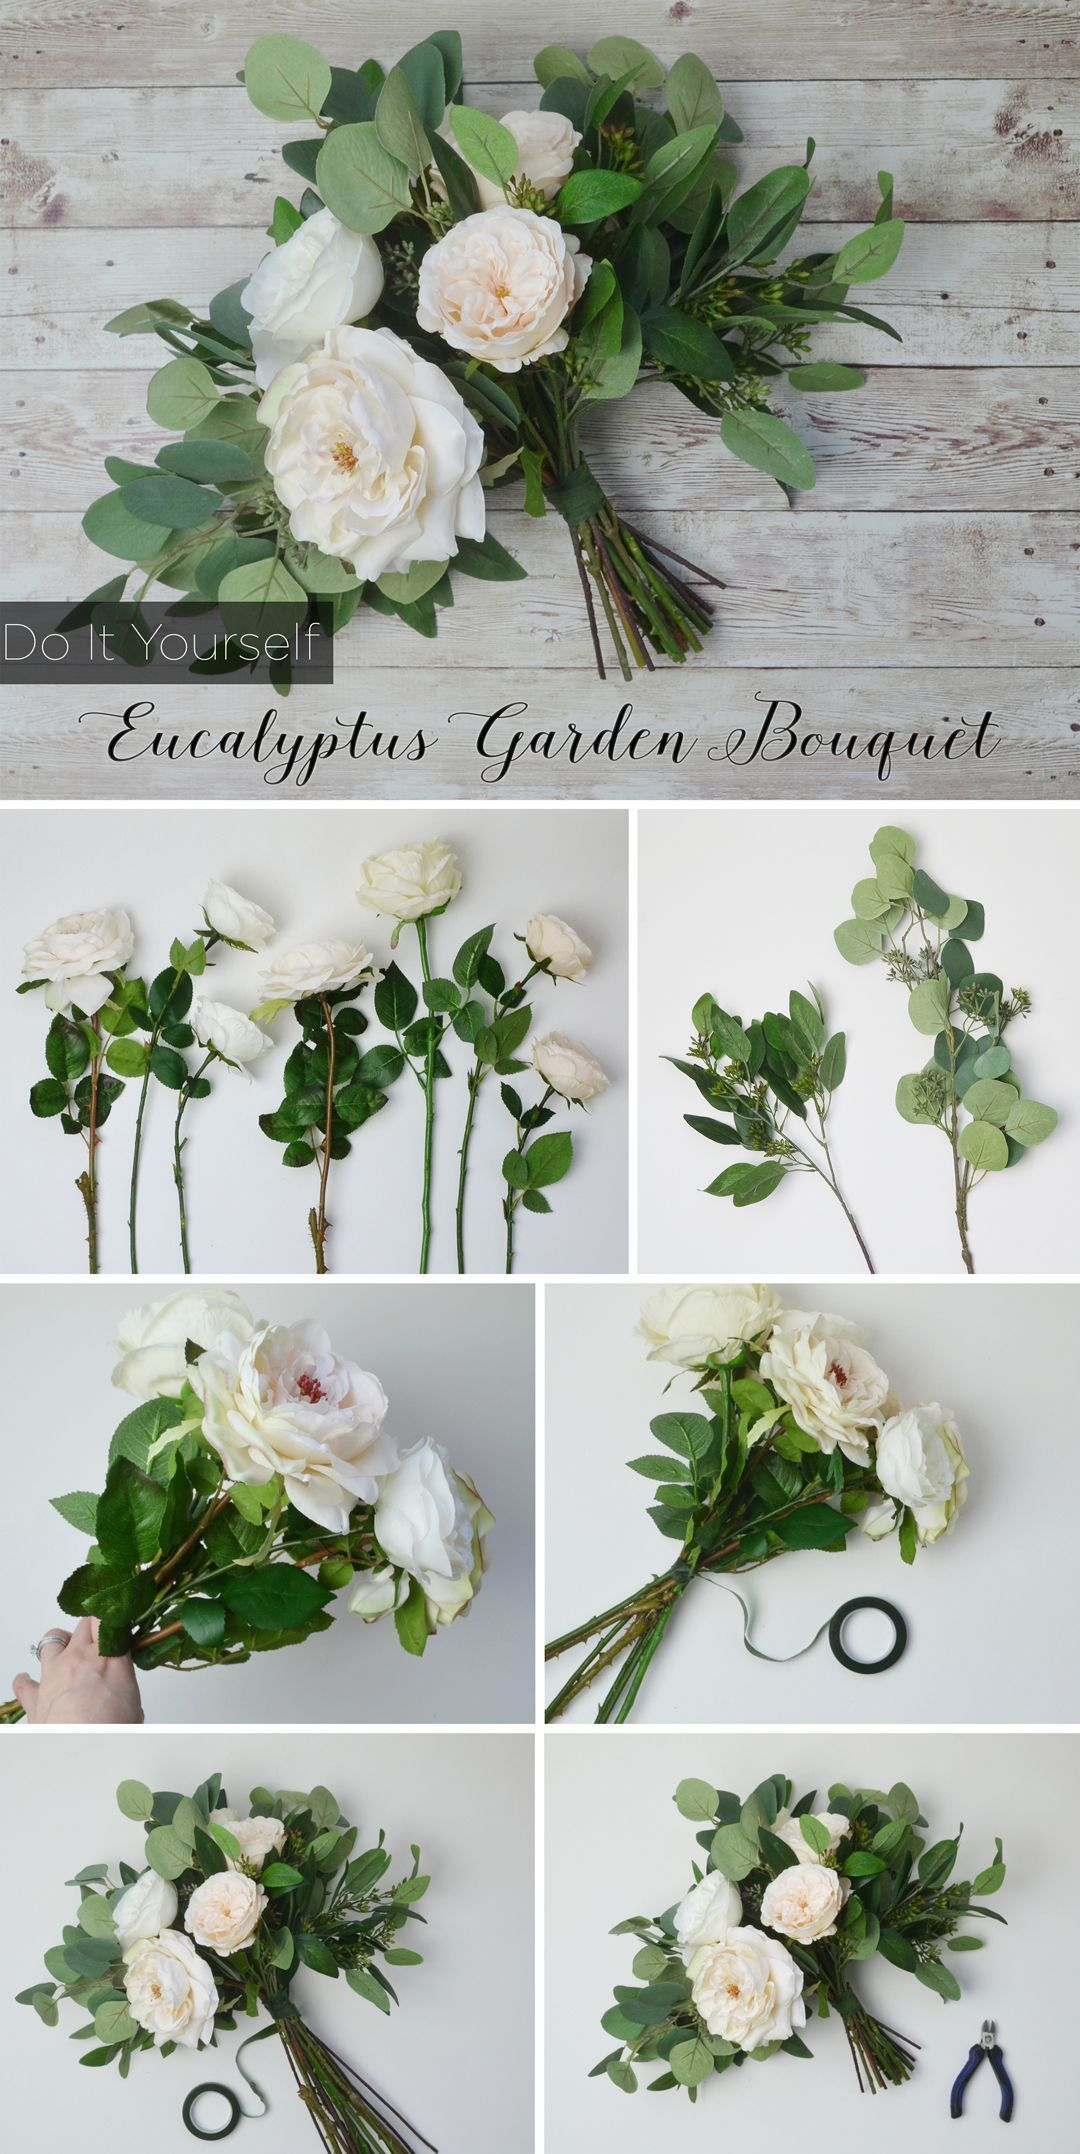 Get ready to make a bridal bouquet for your wedding follow this get ready to make a bridal bouquet for your wedding follow this bouquet diy from silk flower designer blue orchid creations and walk down the aisle with a izmirmasajfo